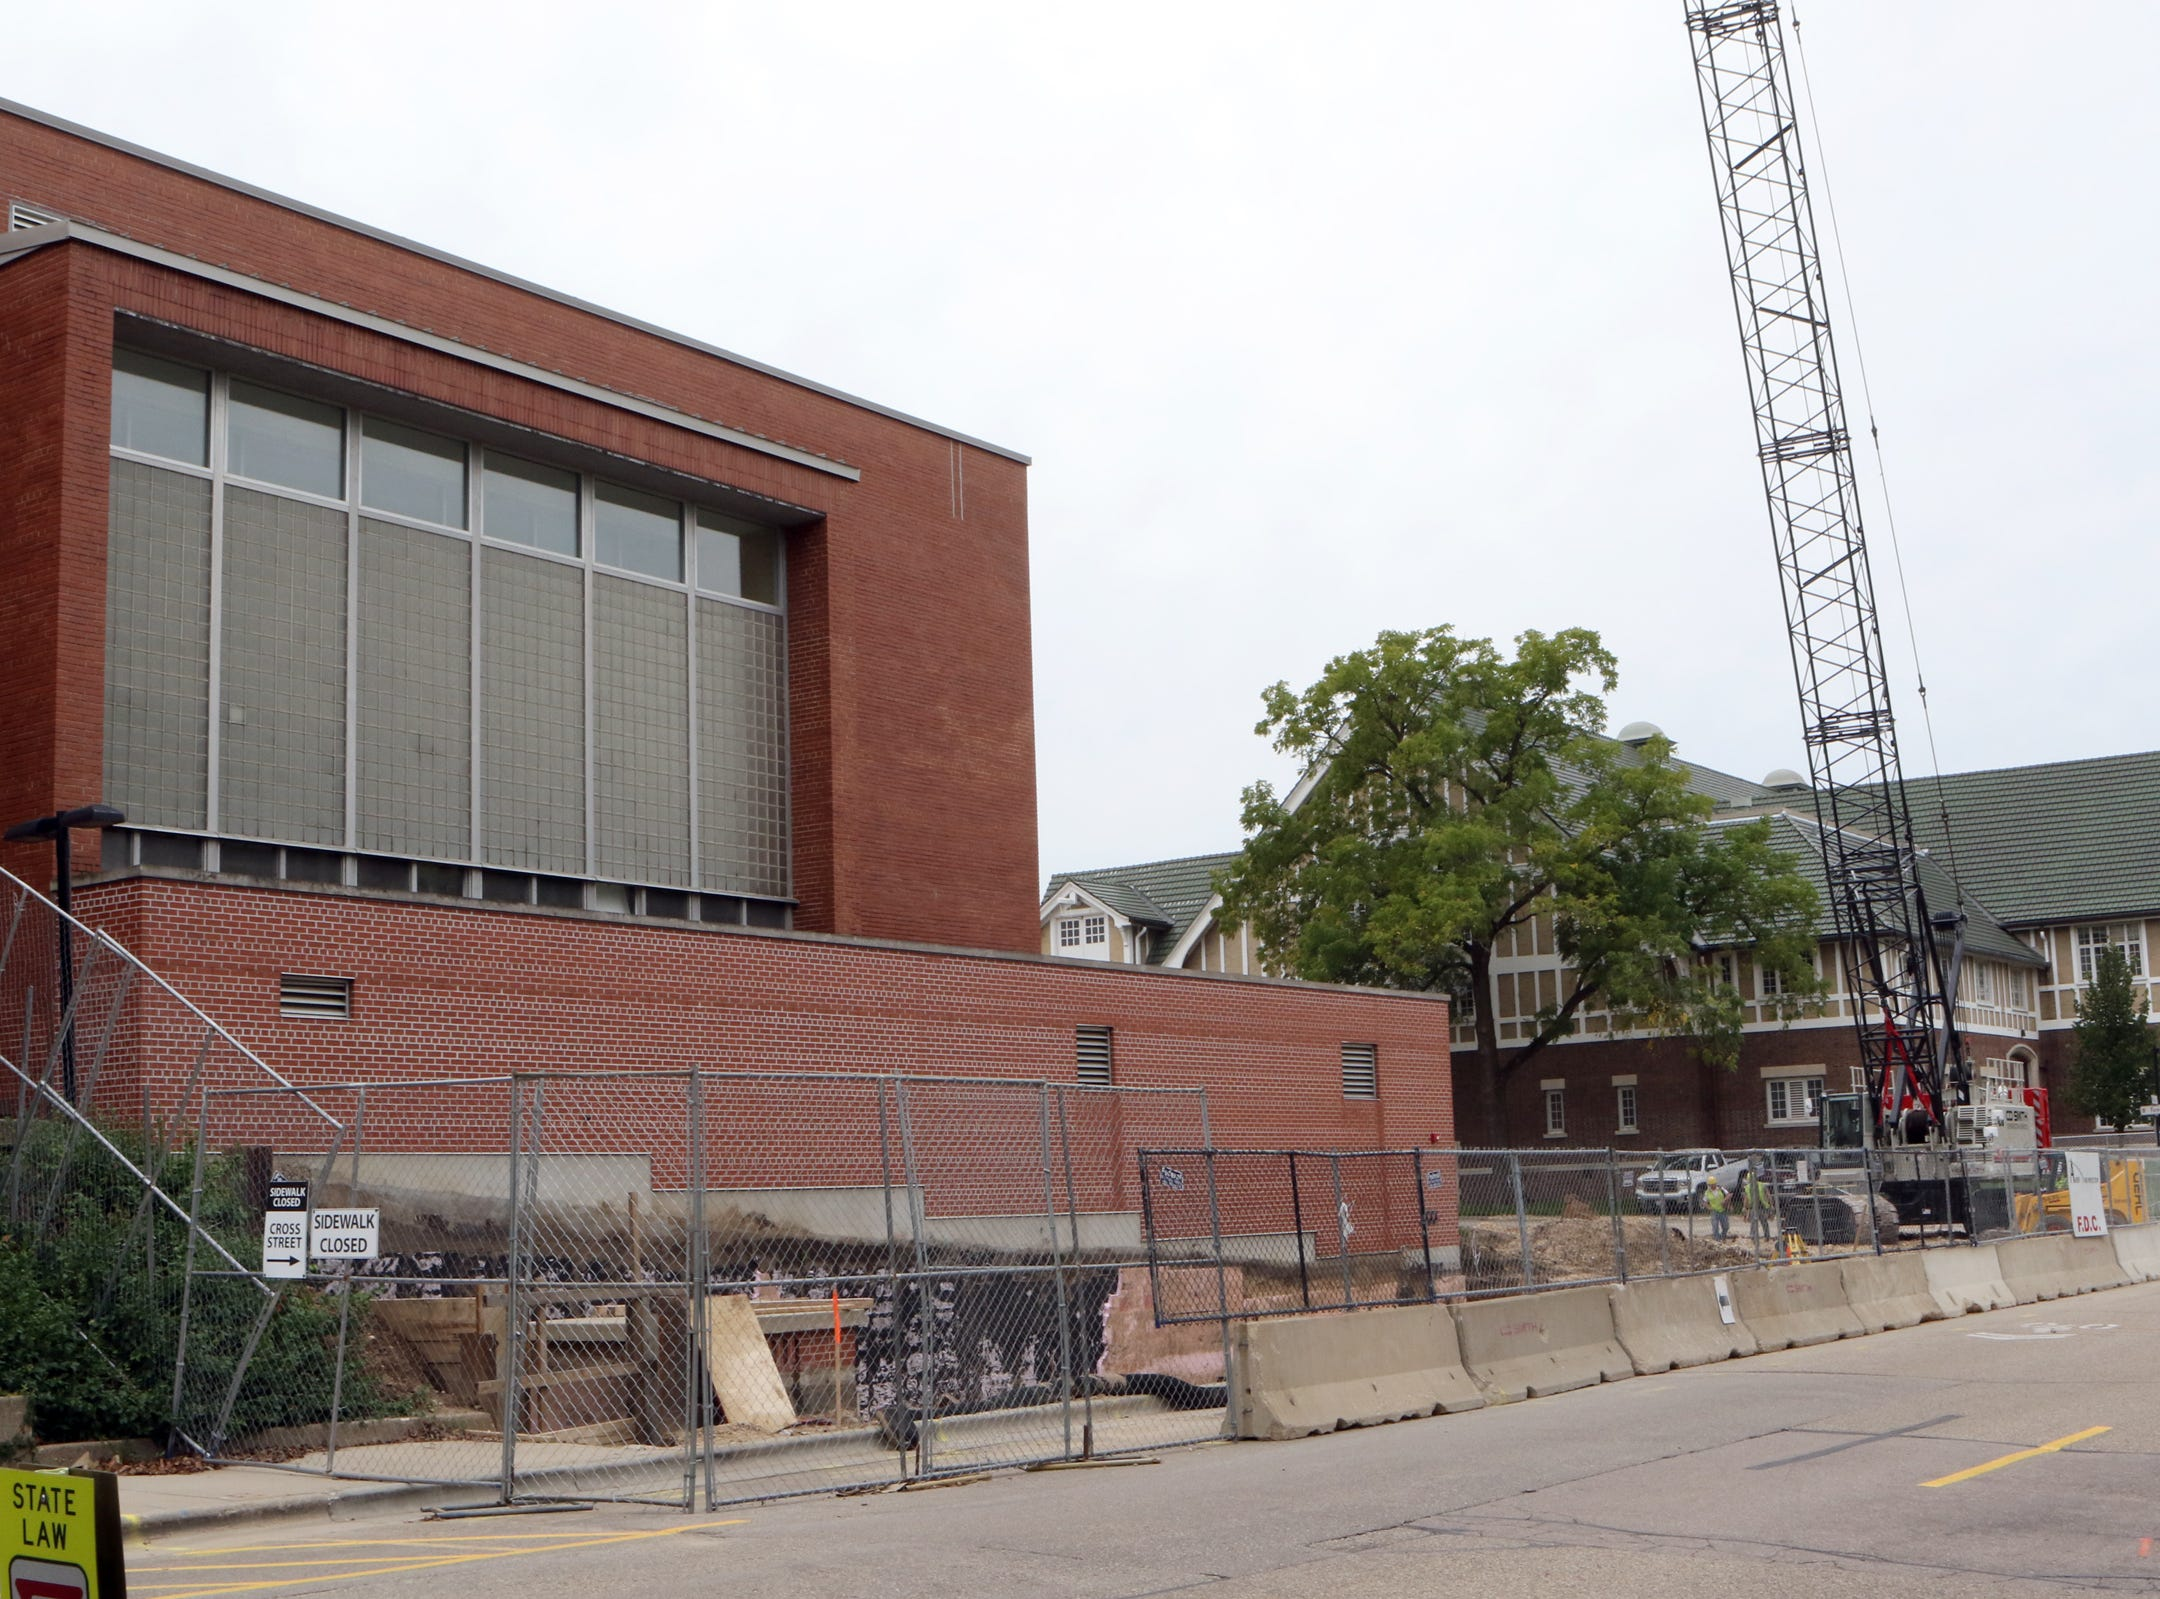 Work has begun on a $47 million construction and renovation project for UW–Madison's Babcock Hall Dairy Plant and Center for Dairy Research. The project will be completed in three phases with completion anticipated later in 2020.